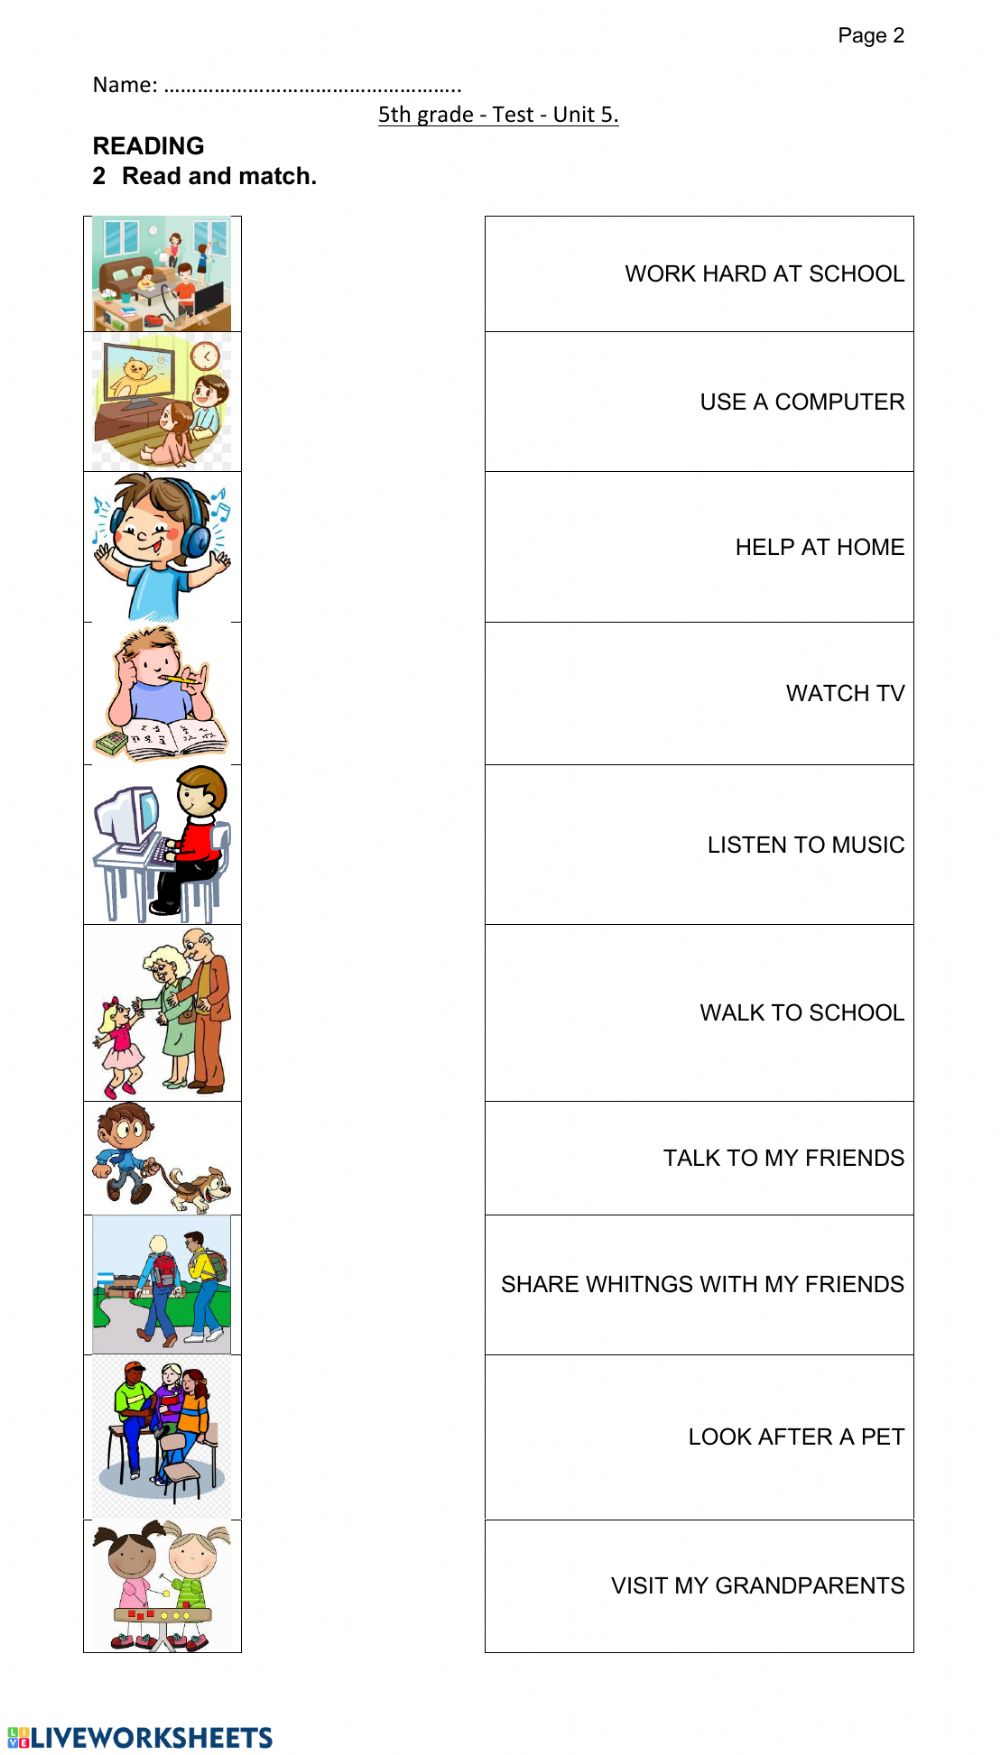 hight resolution of Test 5th grade - daily activities worksheet